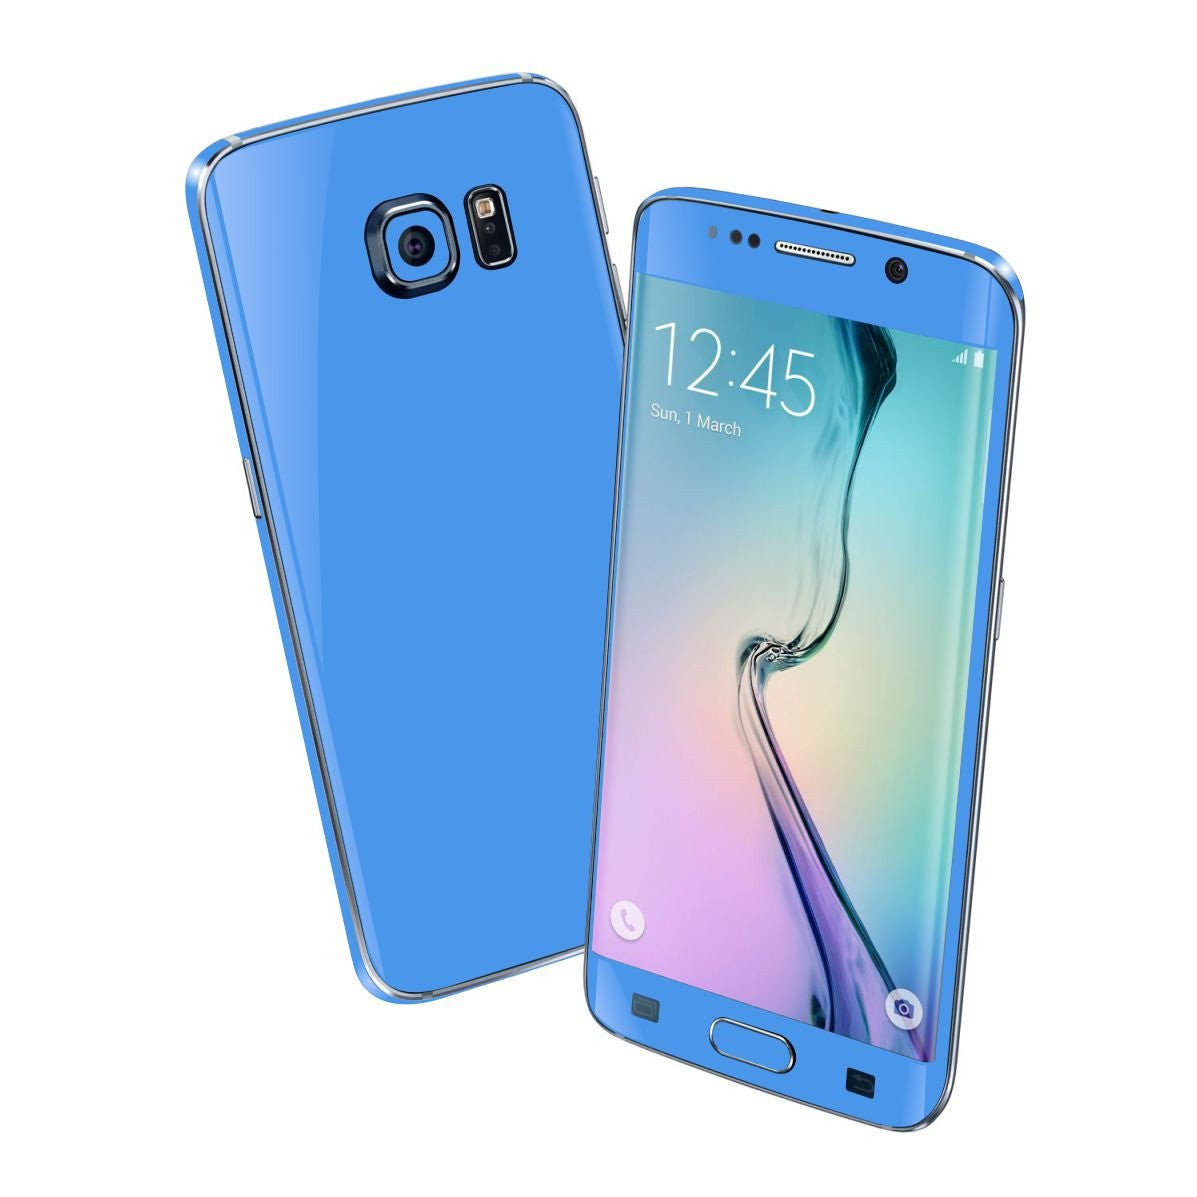 Samsung Galaxy S6 EDGE+ PLUS Colorful BLUE MATT Skin Wrap Sticker Cover Protector Decal by EasySkinz